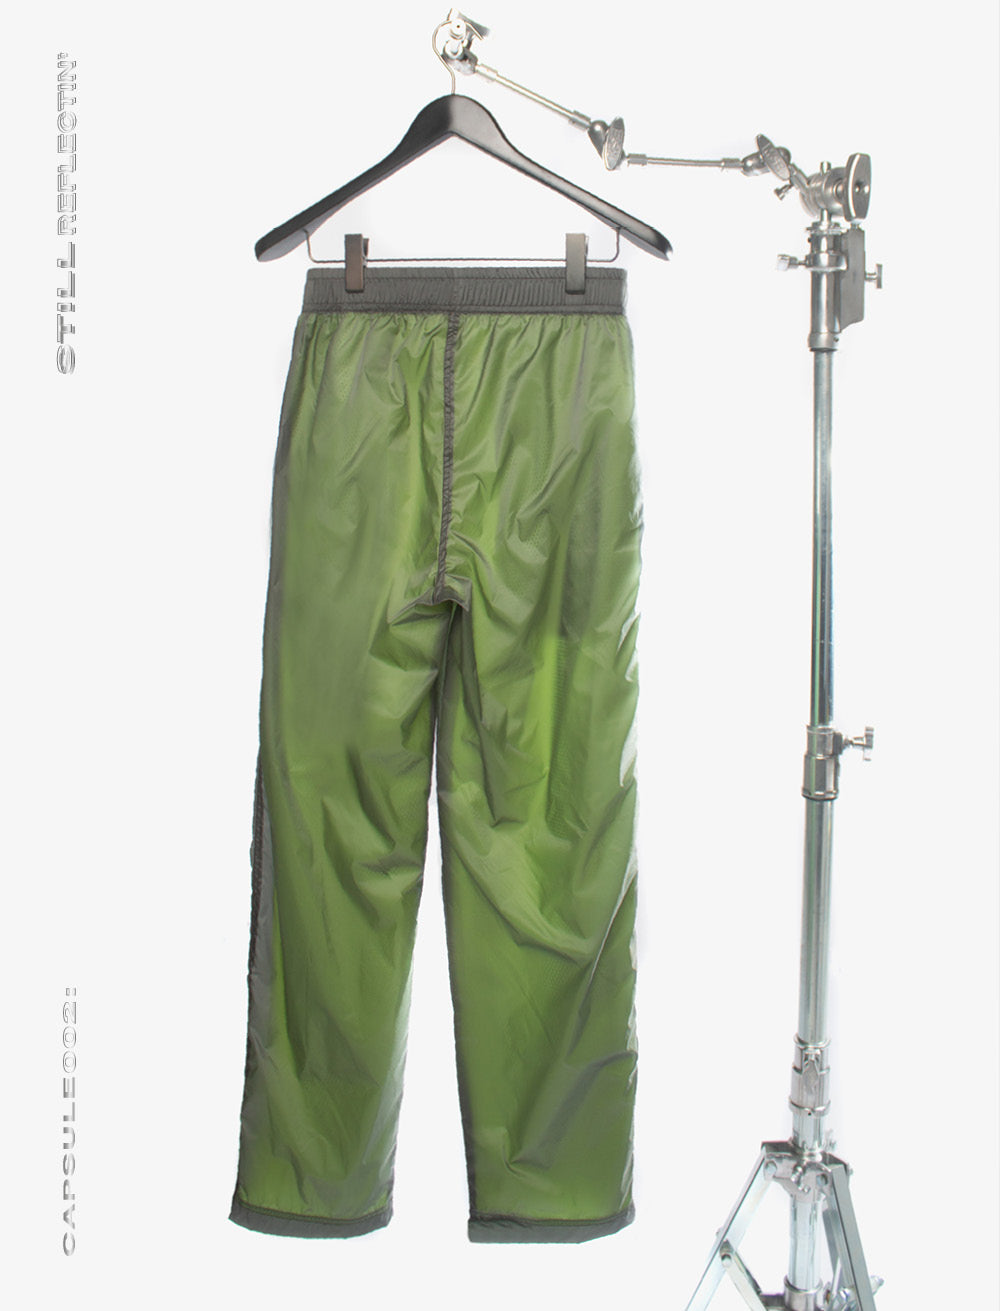 SPORTS TROUSERS // TRANSLUCID NYLON